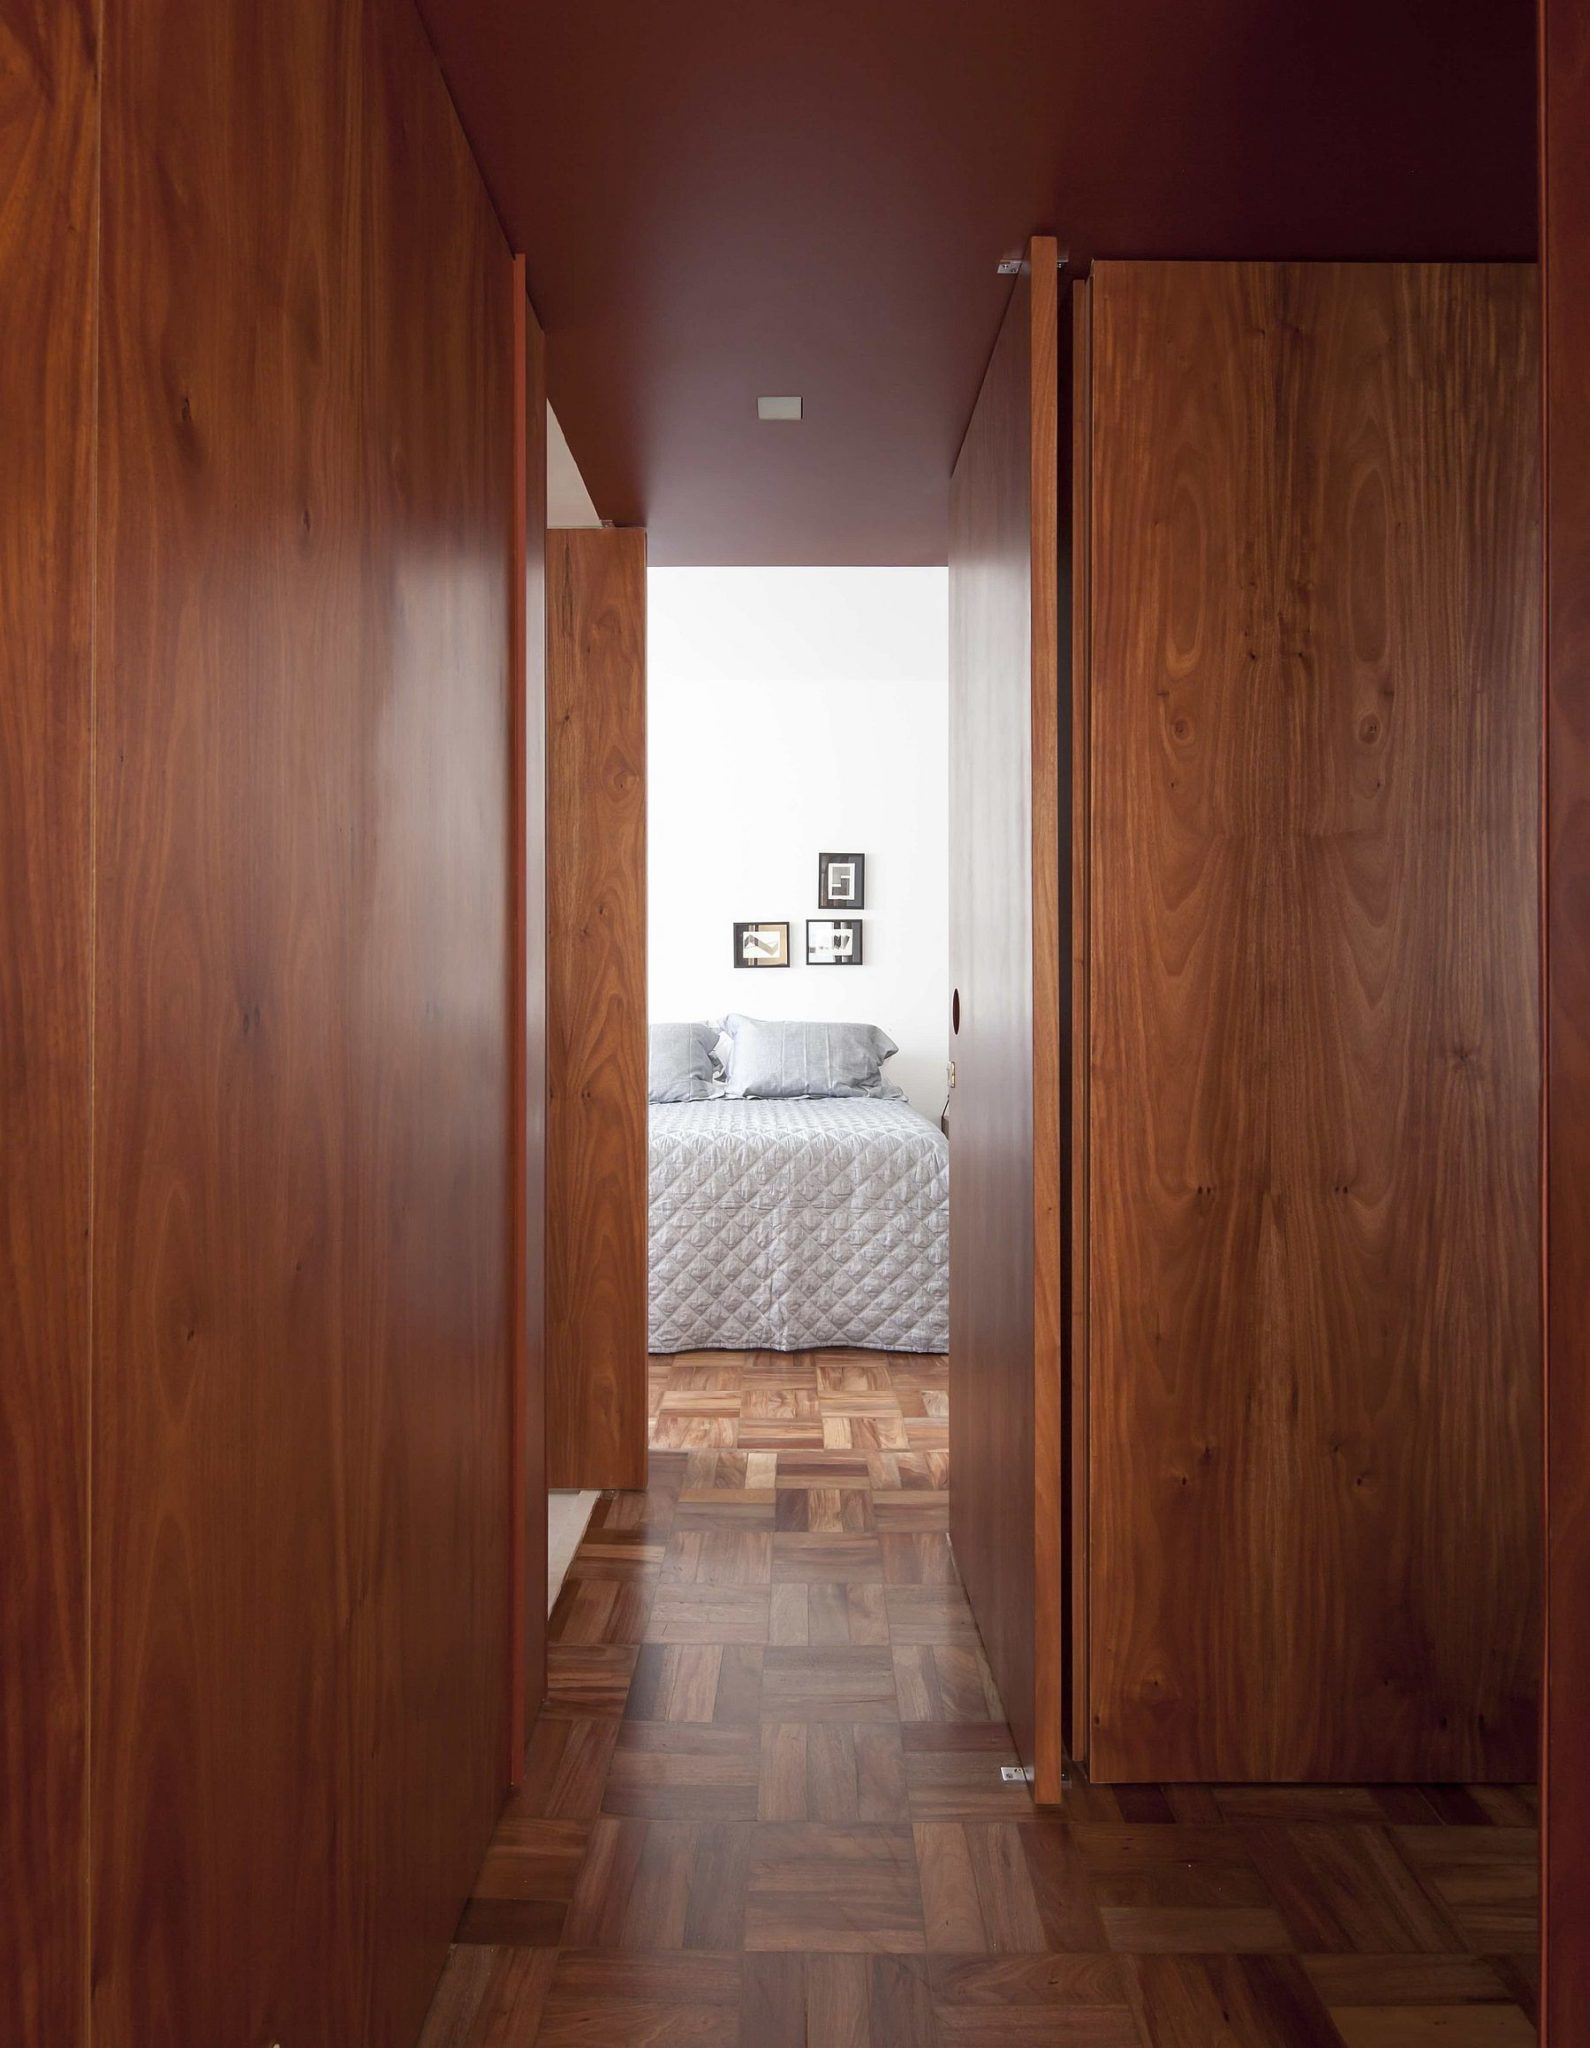 Wooden-panels-and-unique-floor-give-the-apartment-cozy-bright-appeal